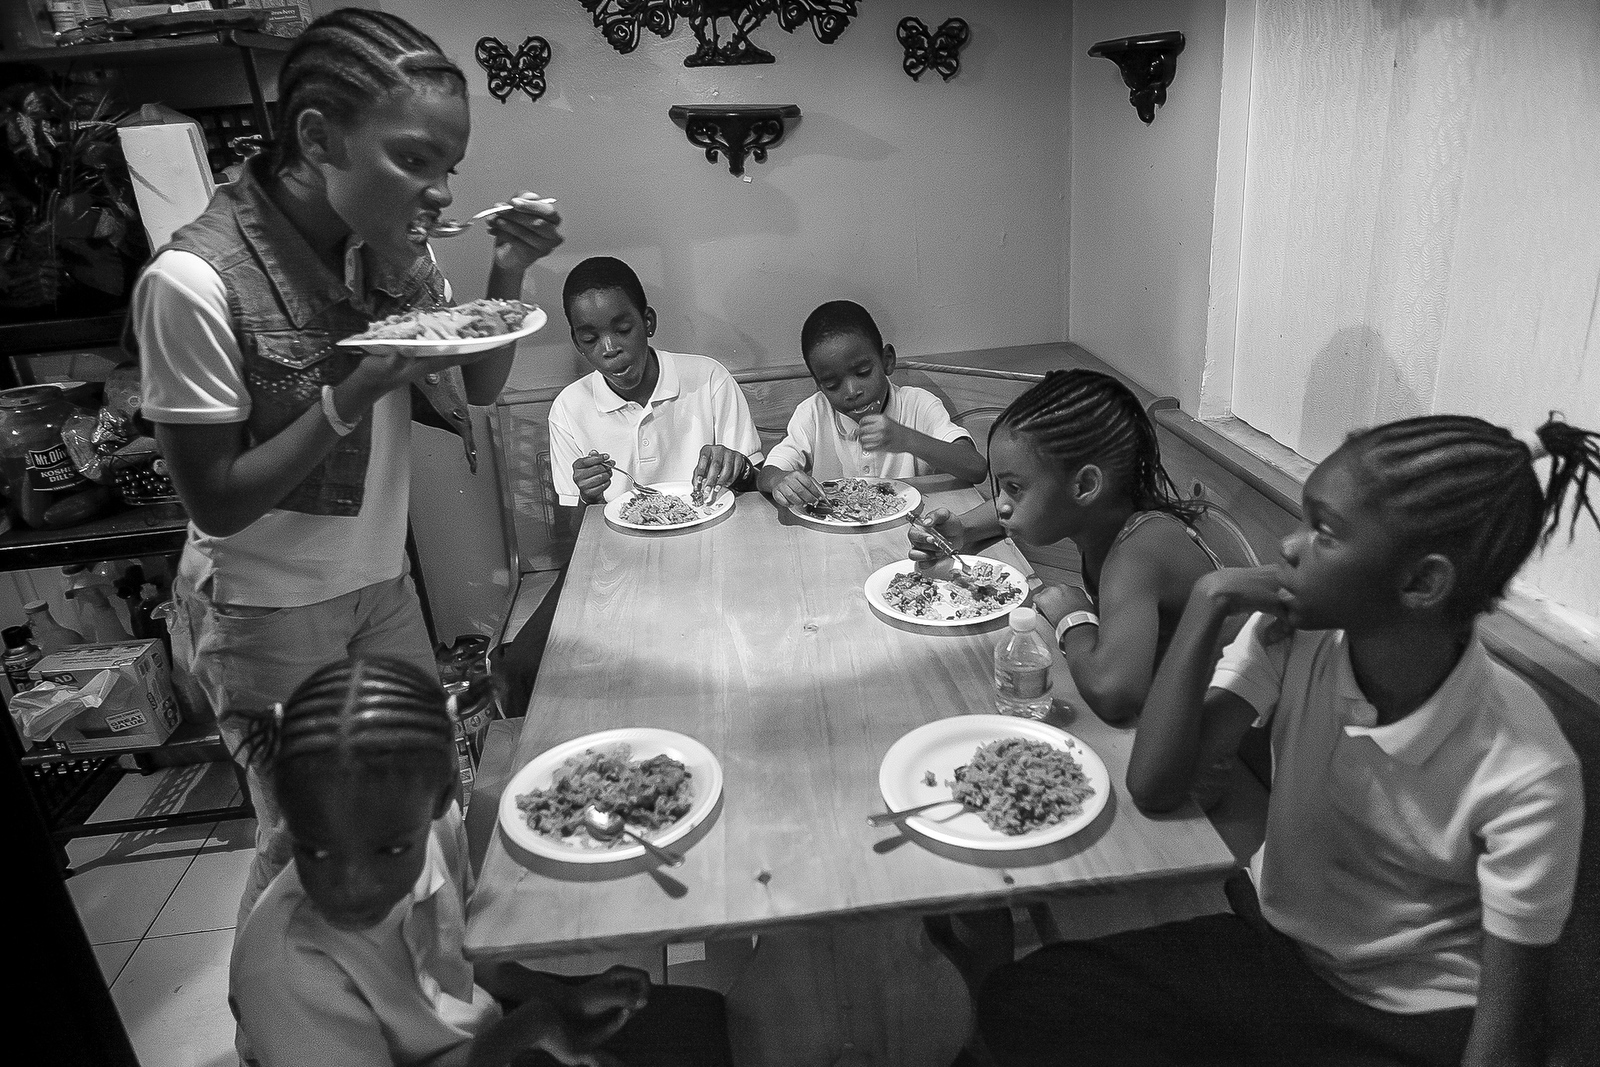 Part of the Fitzgerald family, left to right,Jernyah, Jermiah, Jermaine, Keyshawn, their cousin Joanna Fitzgerald and Jerqueriria squeeze around their grandmother Joann's kitchen table for dinner. Joann adopted six of her grandchildren and is working to gain custody of their older sister as she builds a new life focused around providing the children with a safe, stable environment.